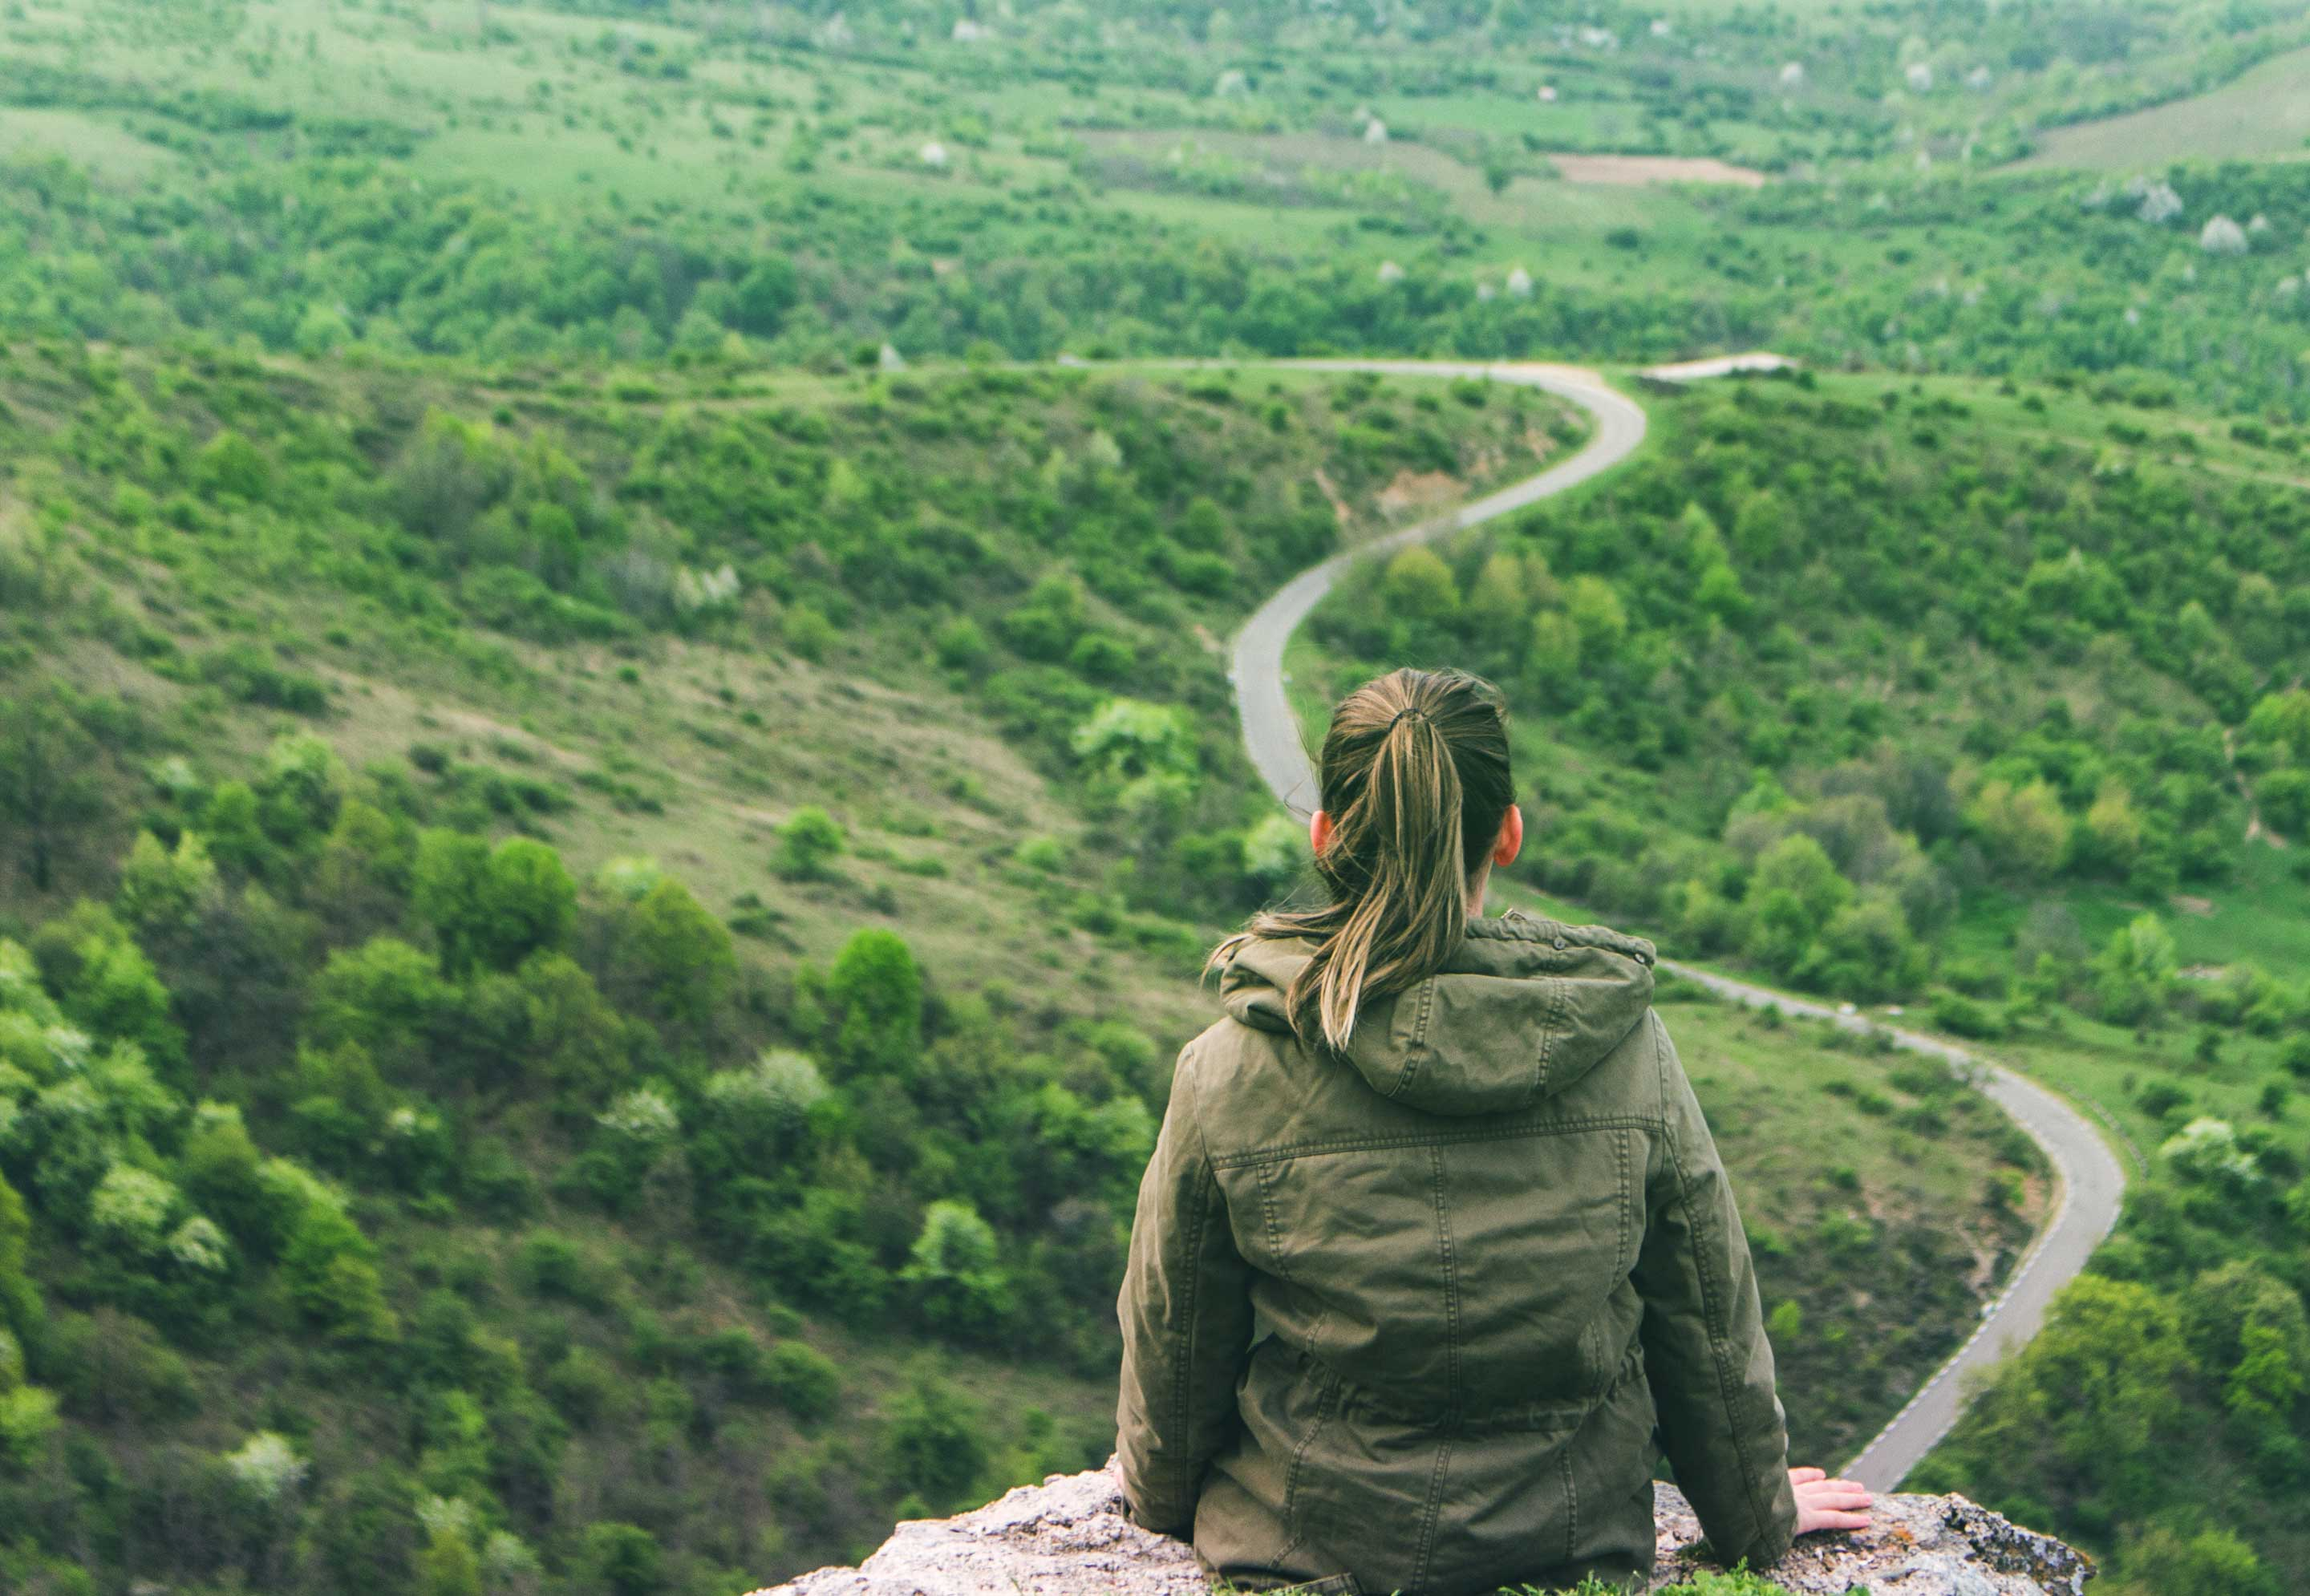 http://nazarene.org/sites/default/files/revslider/image/Discipleship_HOME_BANNER3.jpg